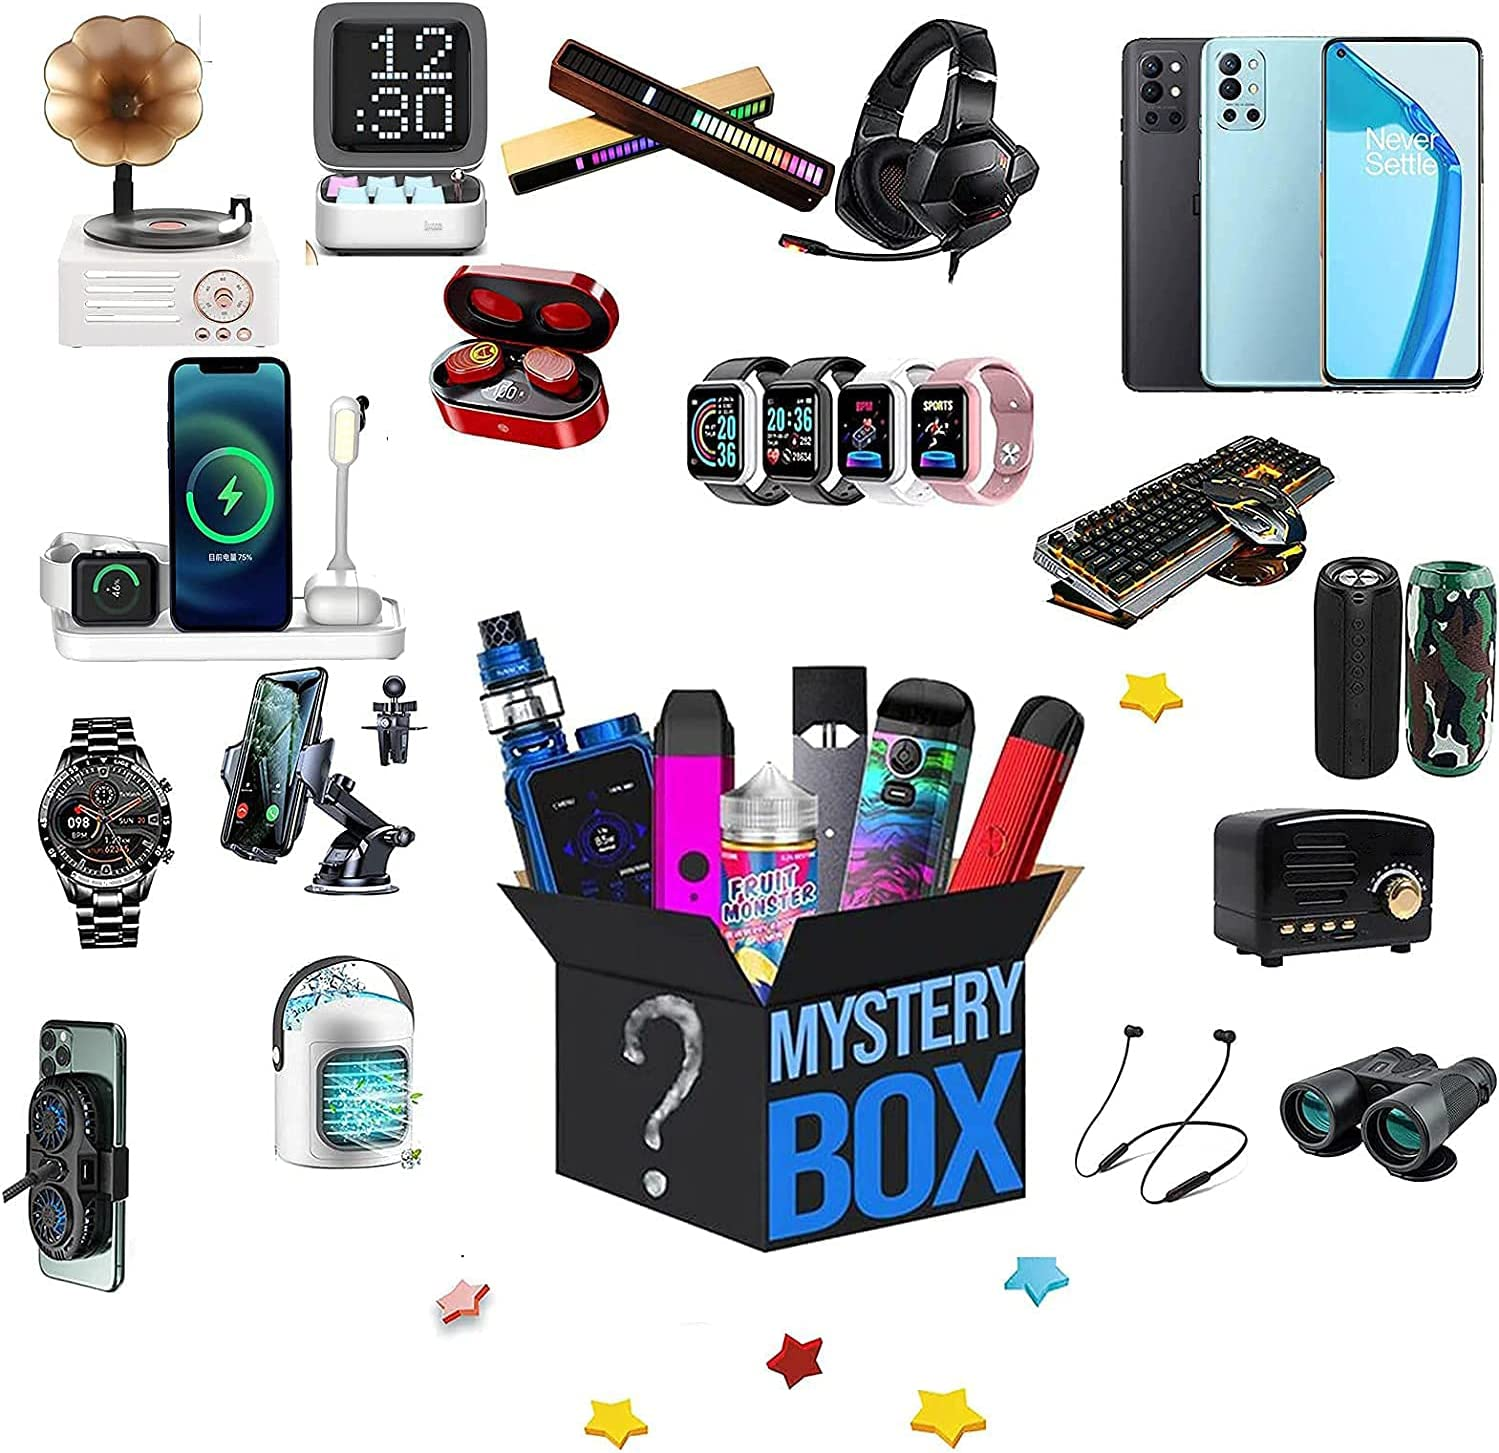 Mystery Las Vegas Mall Box Online limited product Electronic Product Lucky Wa Smart Blind Surprise